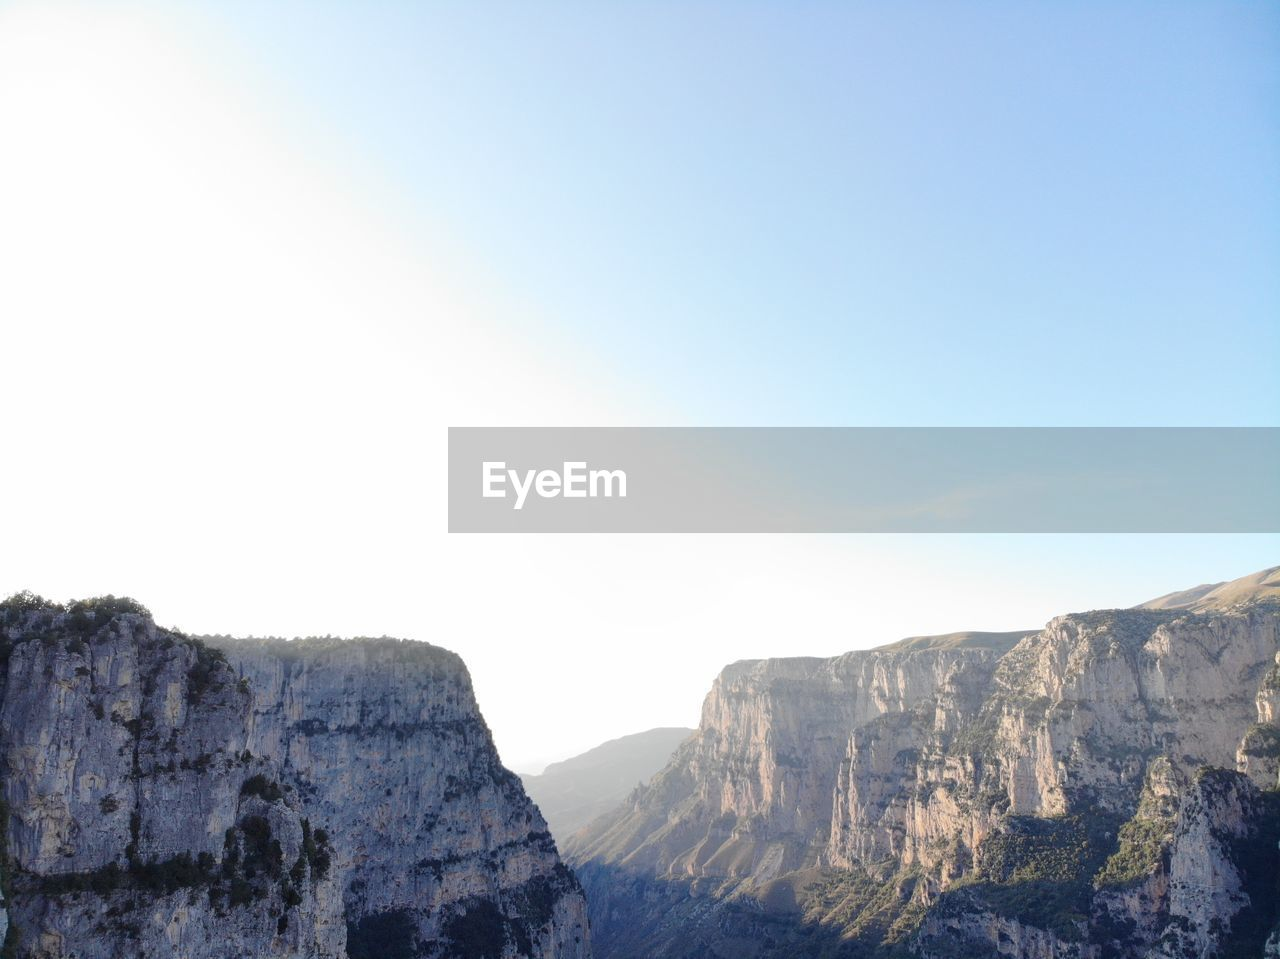 sky, mountain, rock, beauty in nature, nature, scenics - nature, tranquility, copy space, tranquil scene, environment, formation, mountain range, landscape, cliff, clear sky, no people, non-urban scene, rocky mountains, day, rock formation, outdoors, mountain peak, high, height, eroded